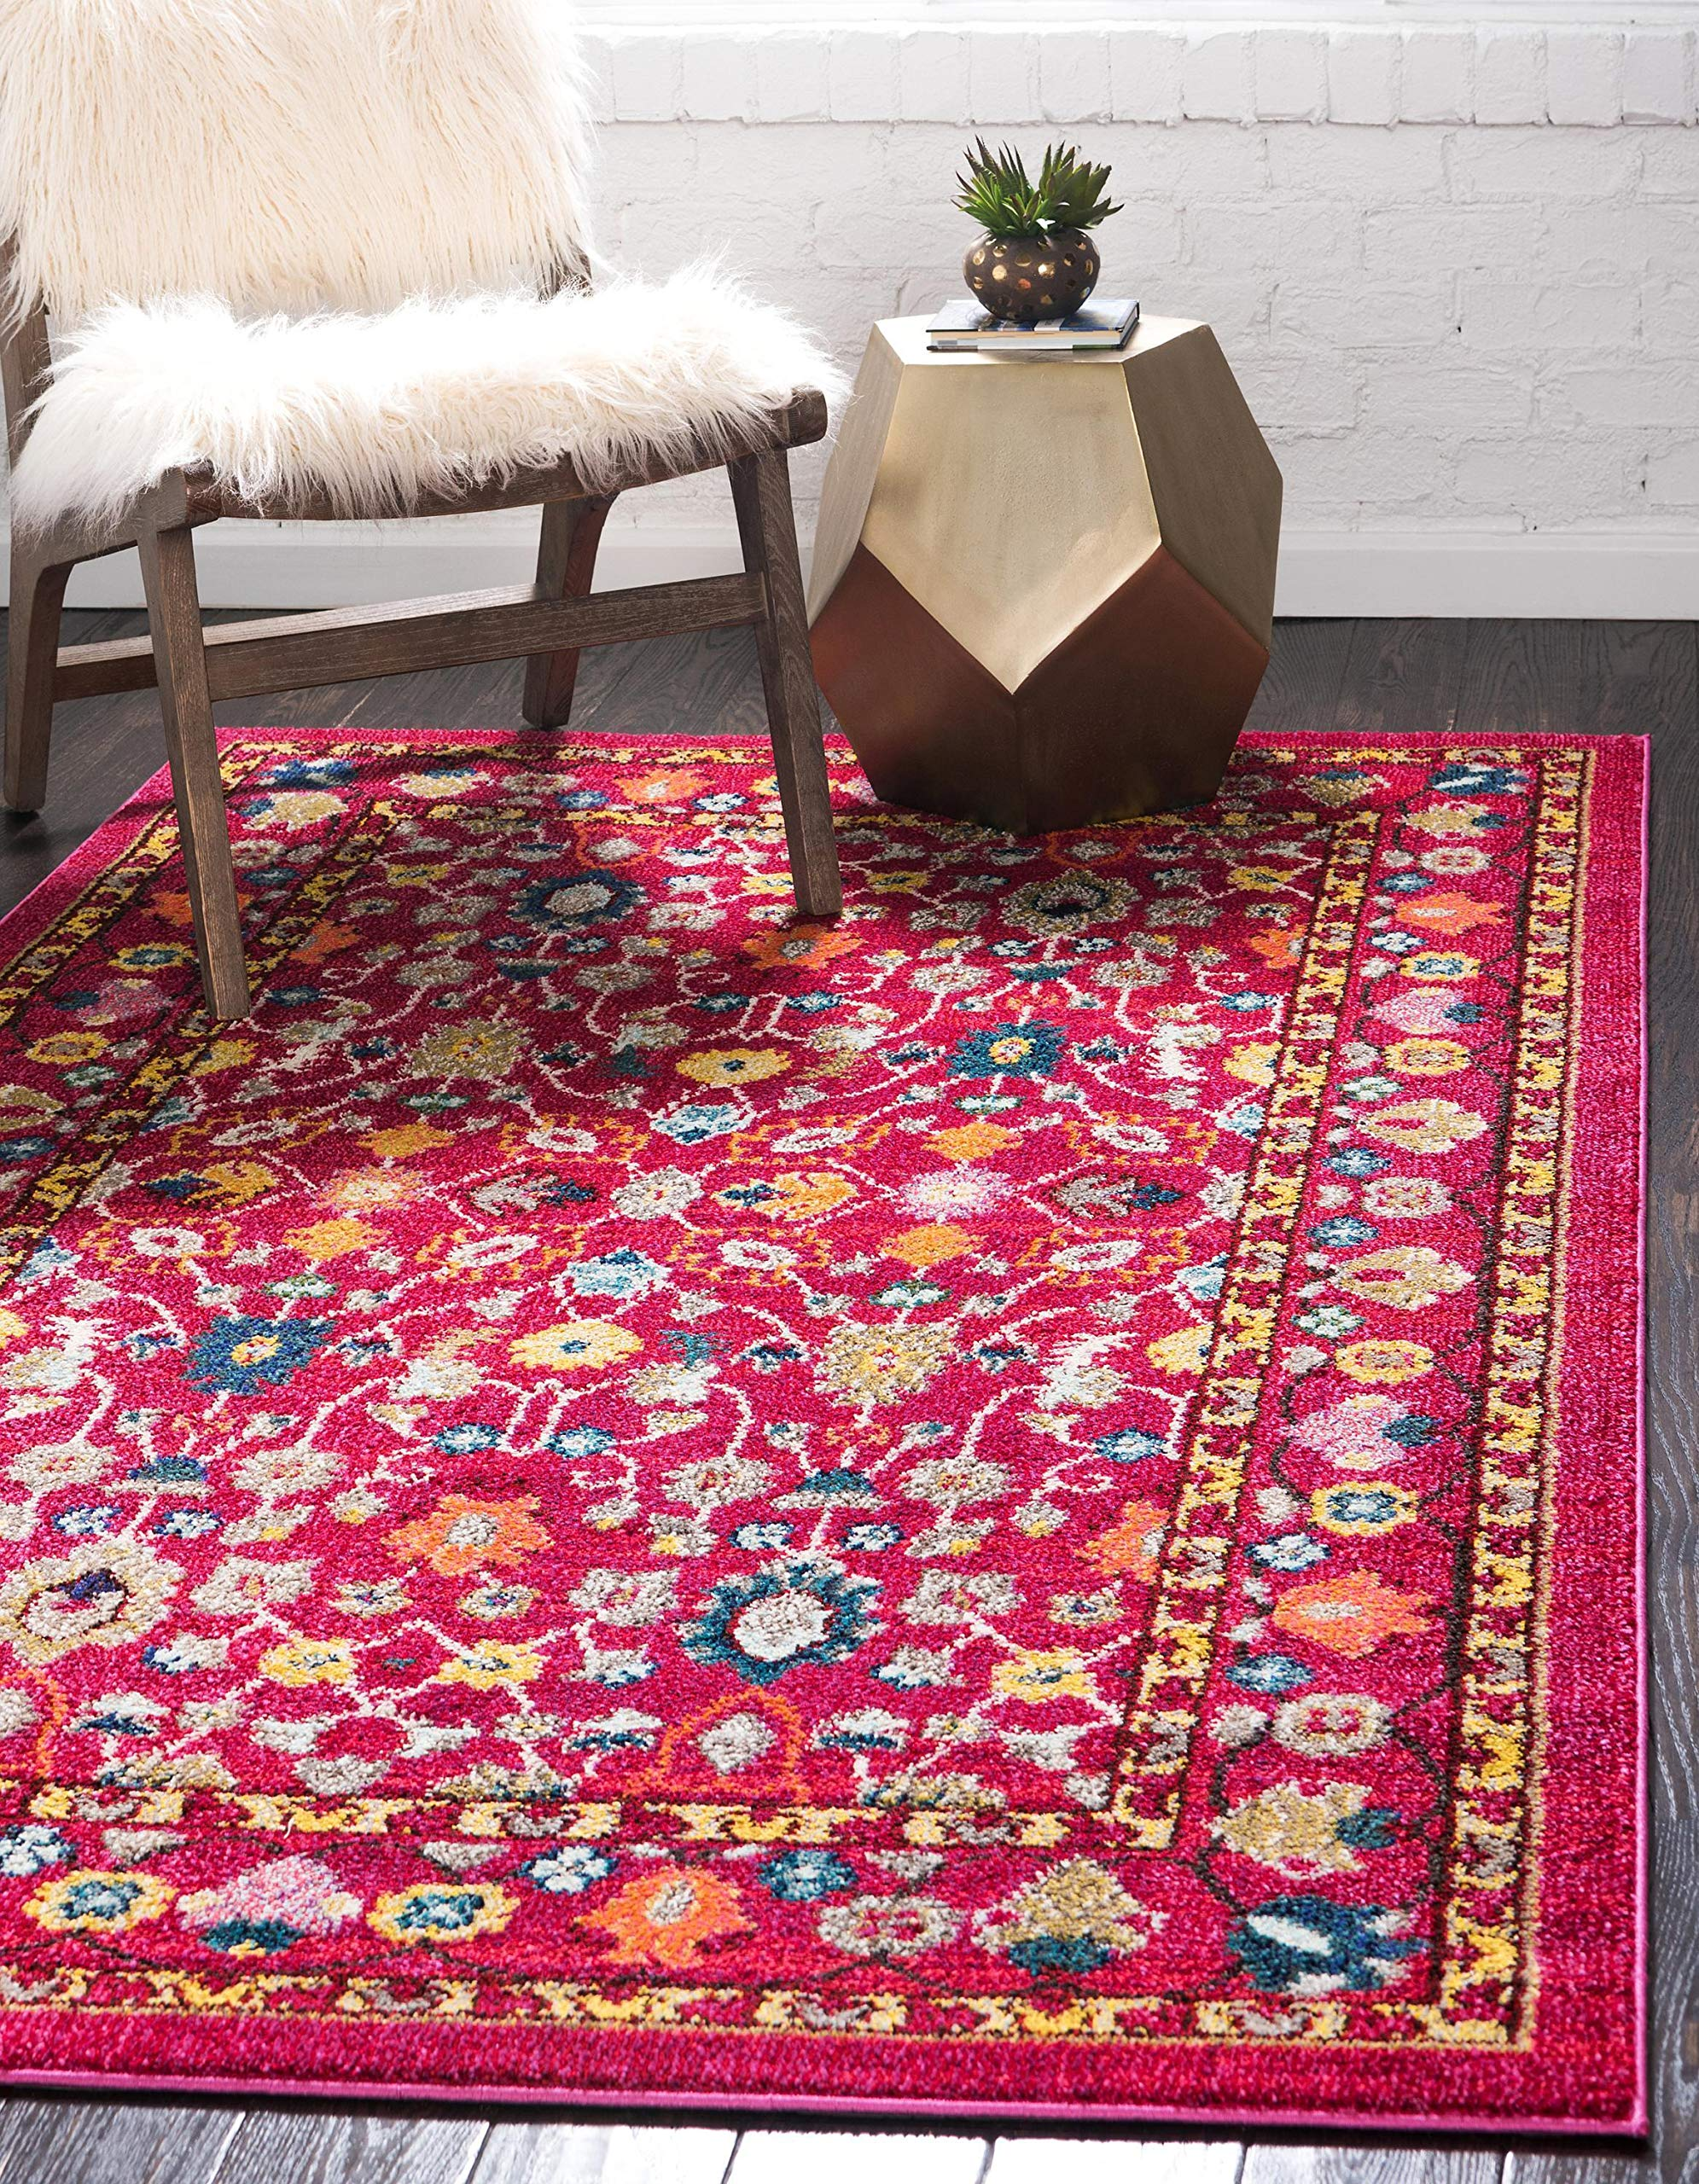 Unique Loom Medici Collection Floral Traditional Vibrant Colors Pink Area Rug (9' 0 x 12' 0)